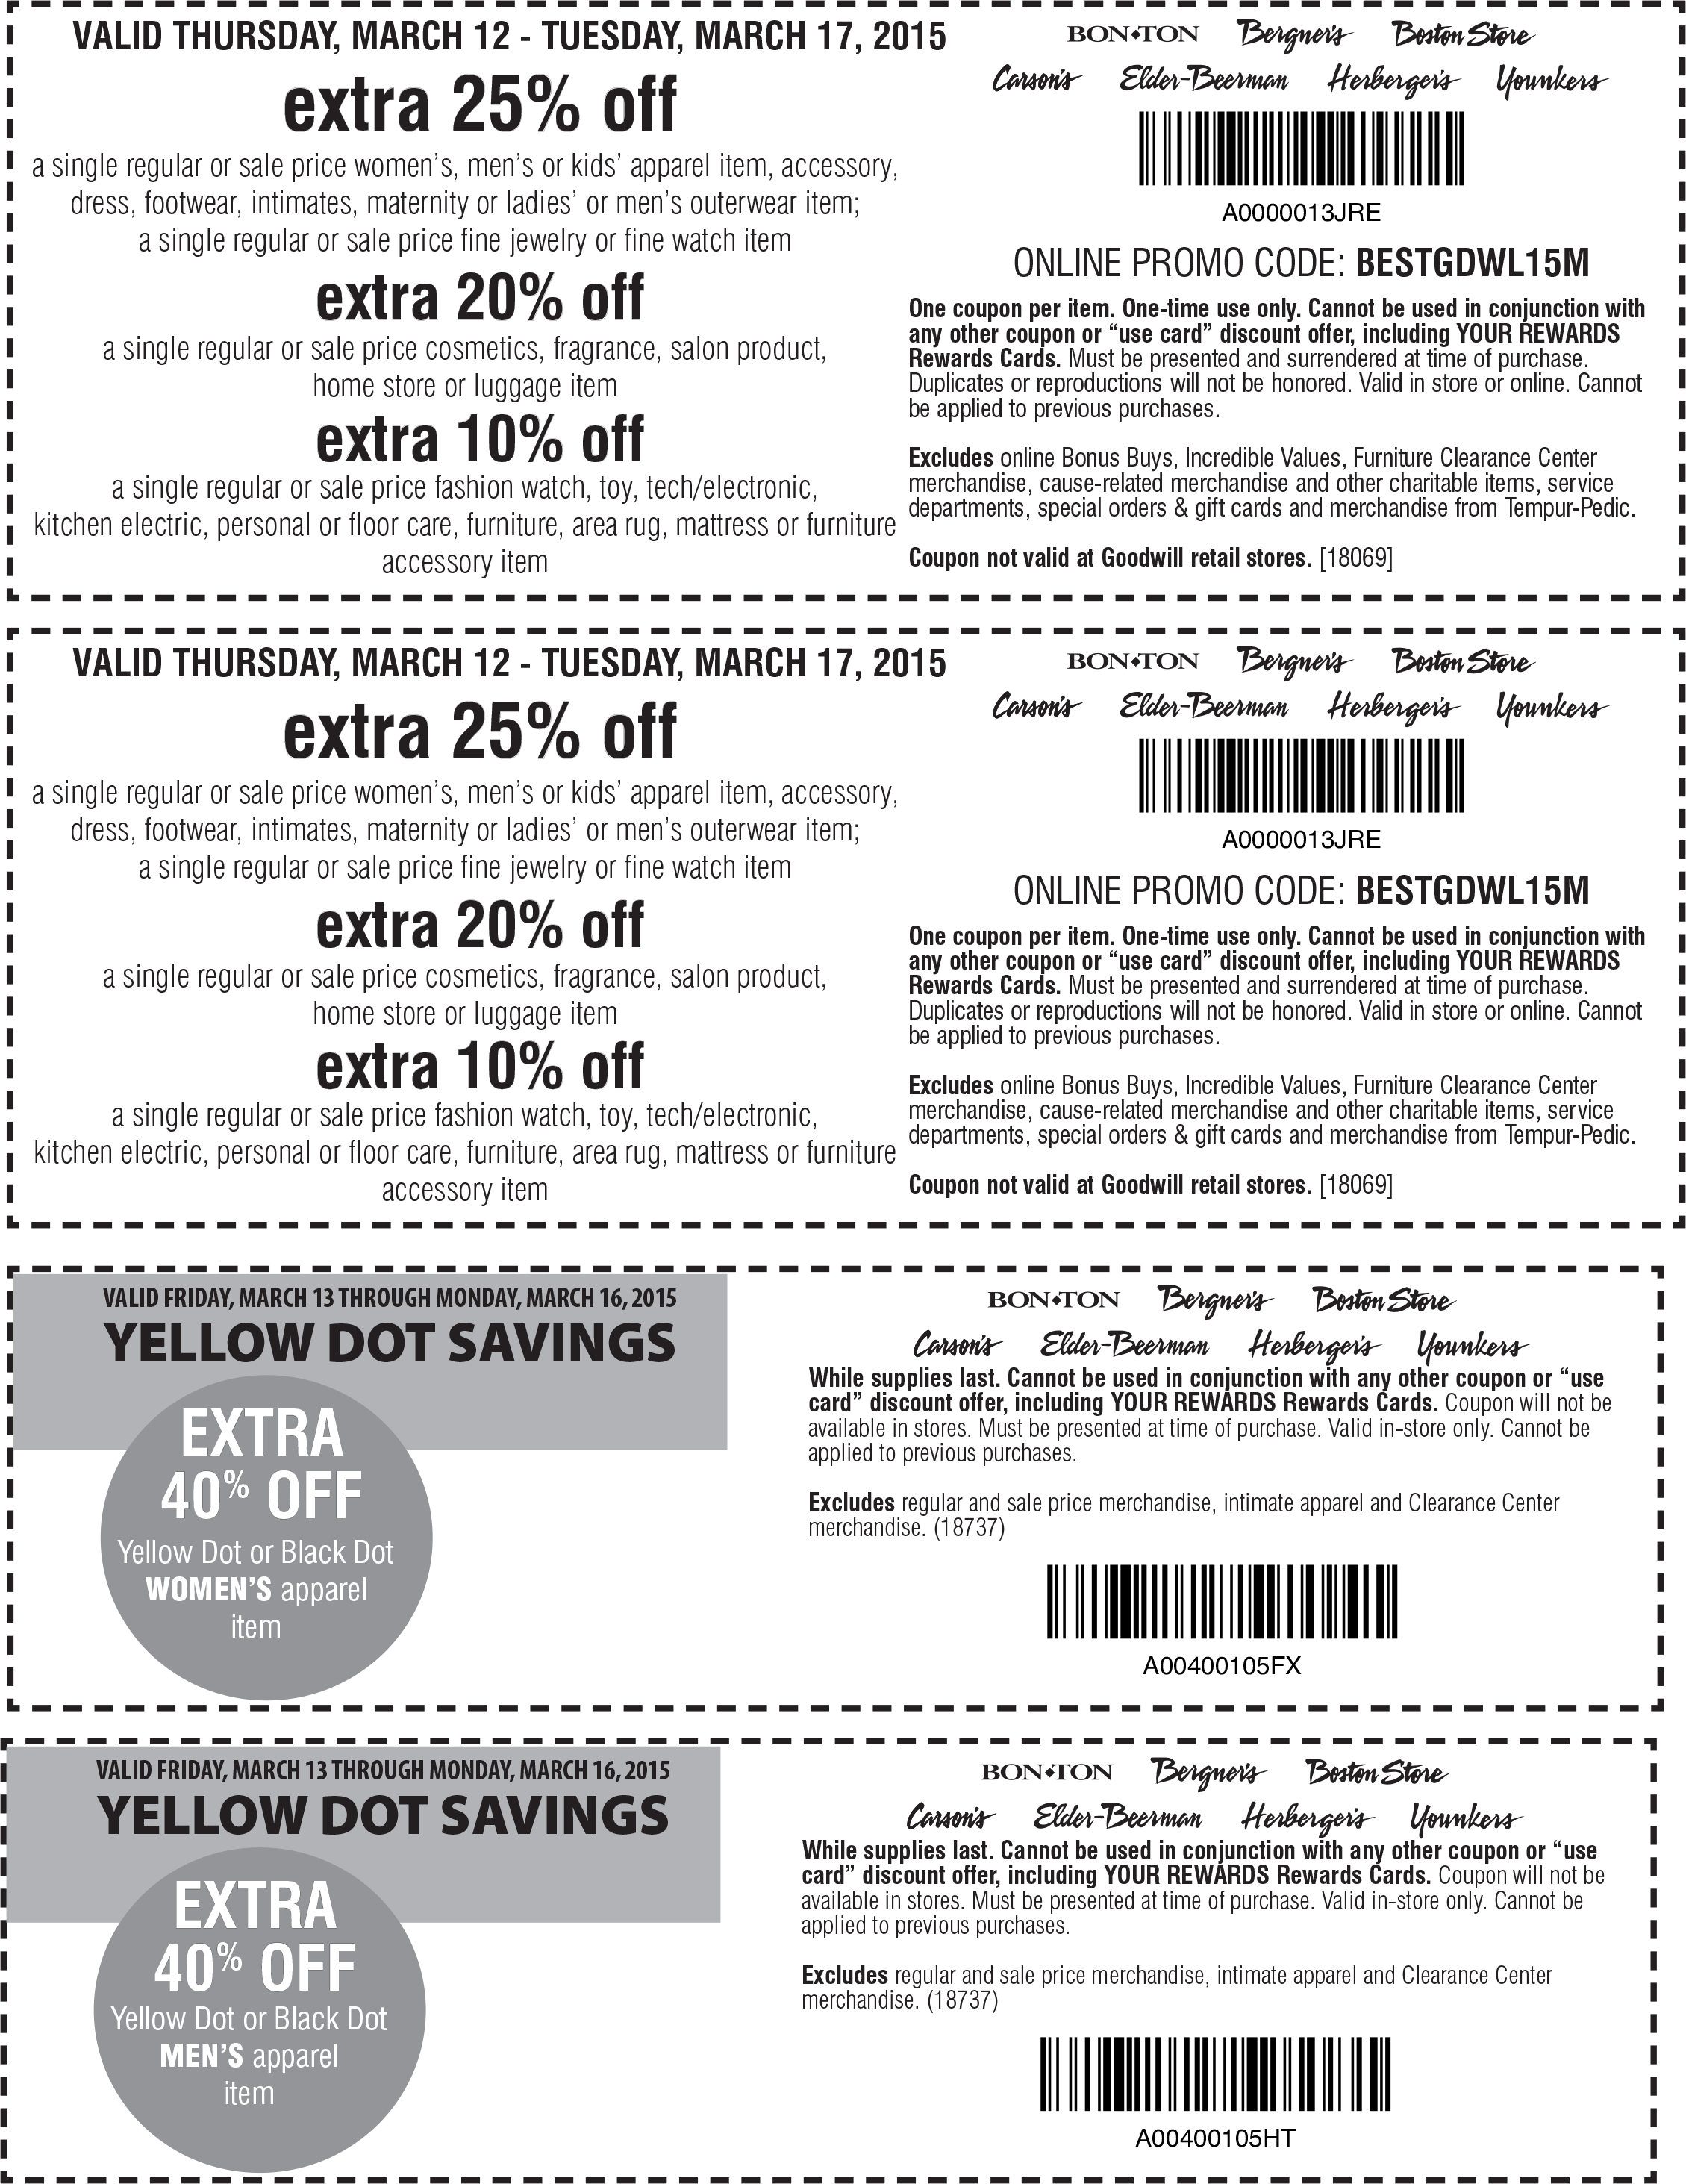 Carsons Coupon February 2017 Extra 25-40% off at Carsons, Bon Ton & sister stores, or online via promo code BESTGDWL15M